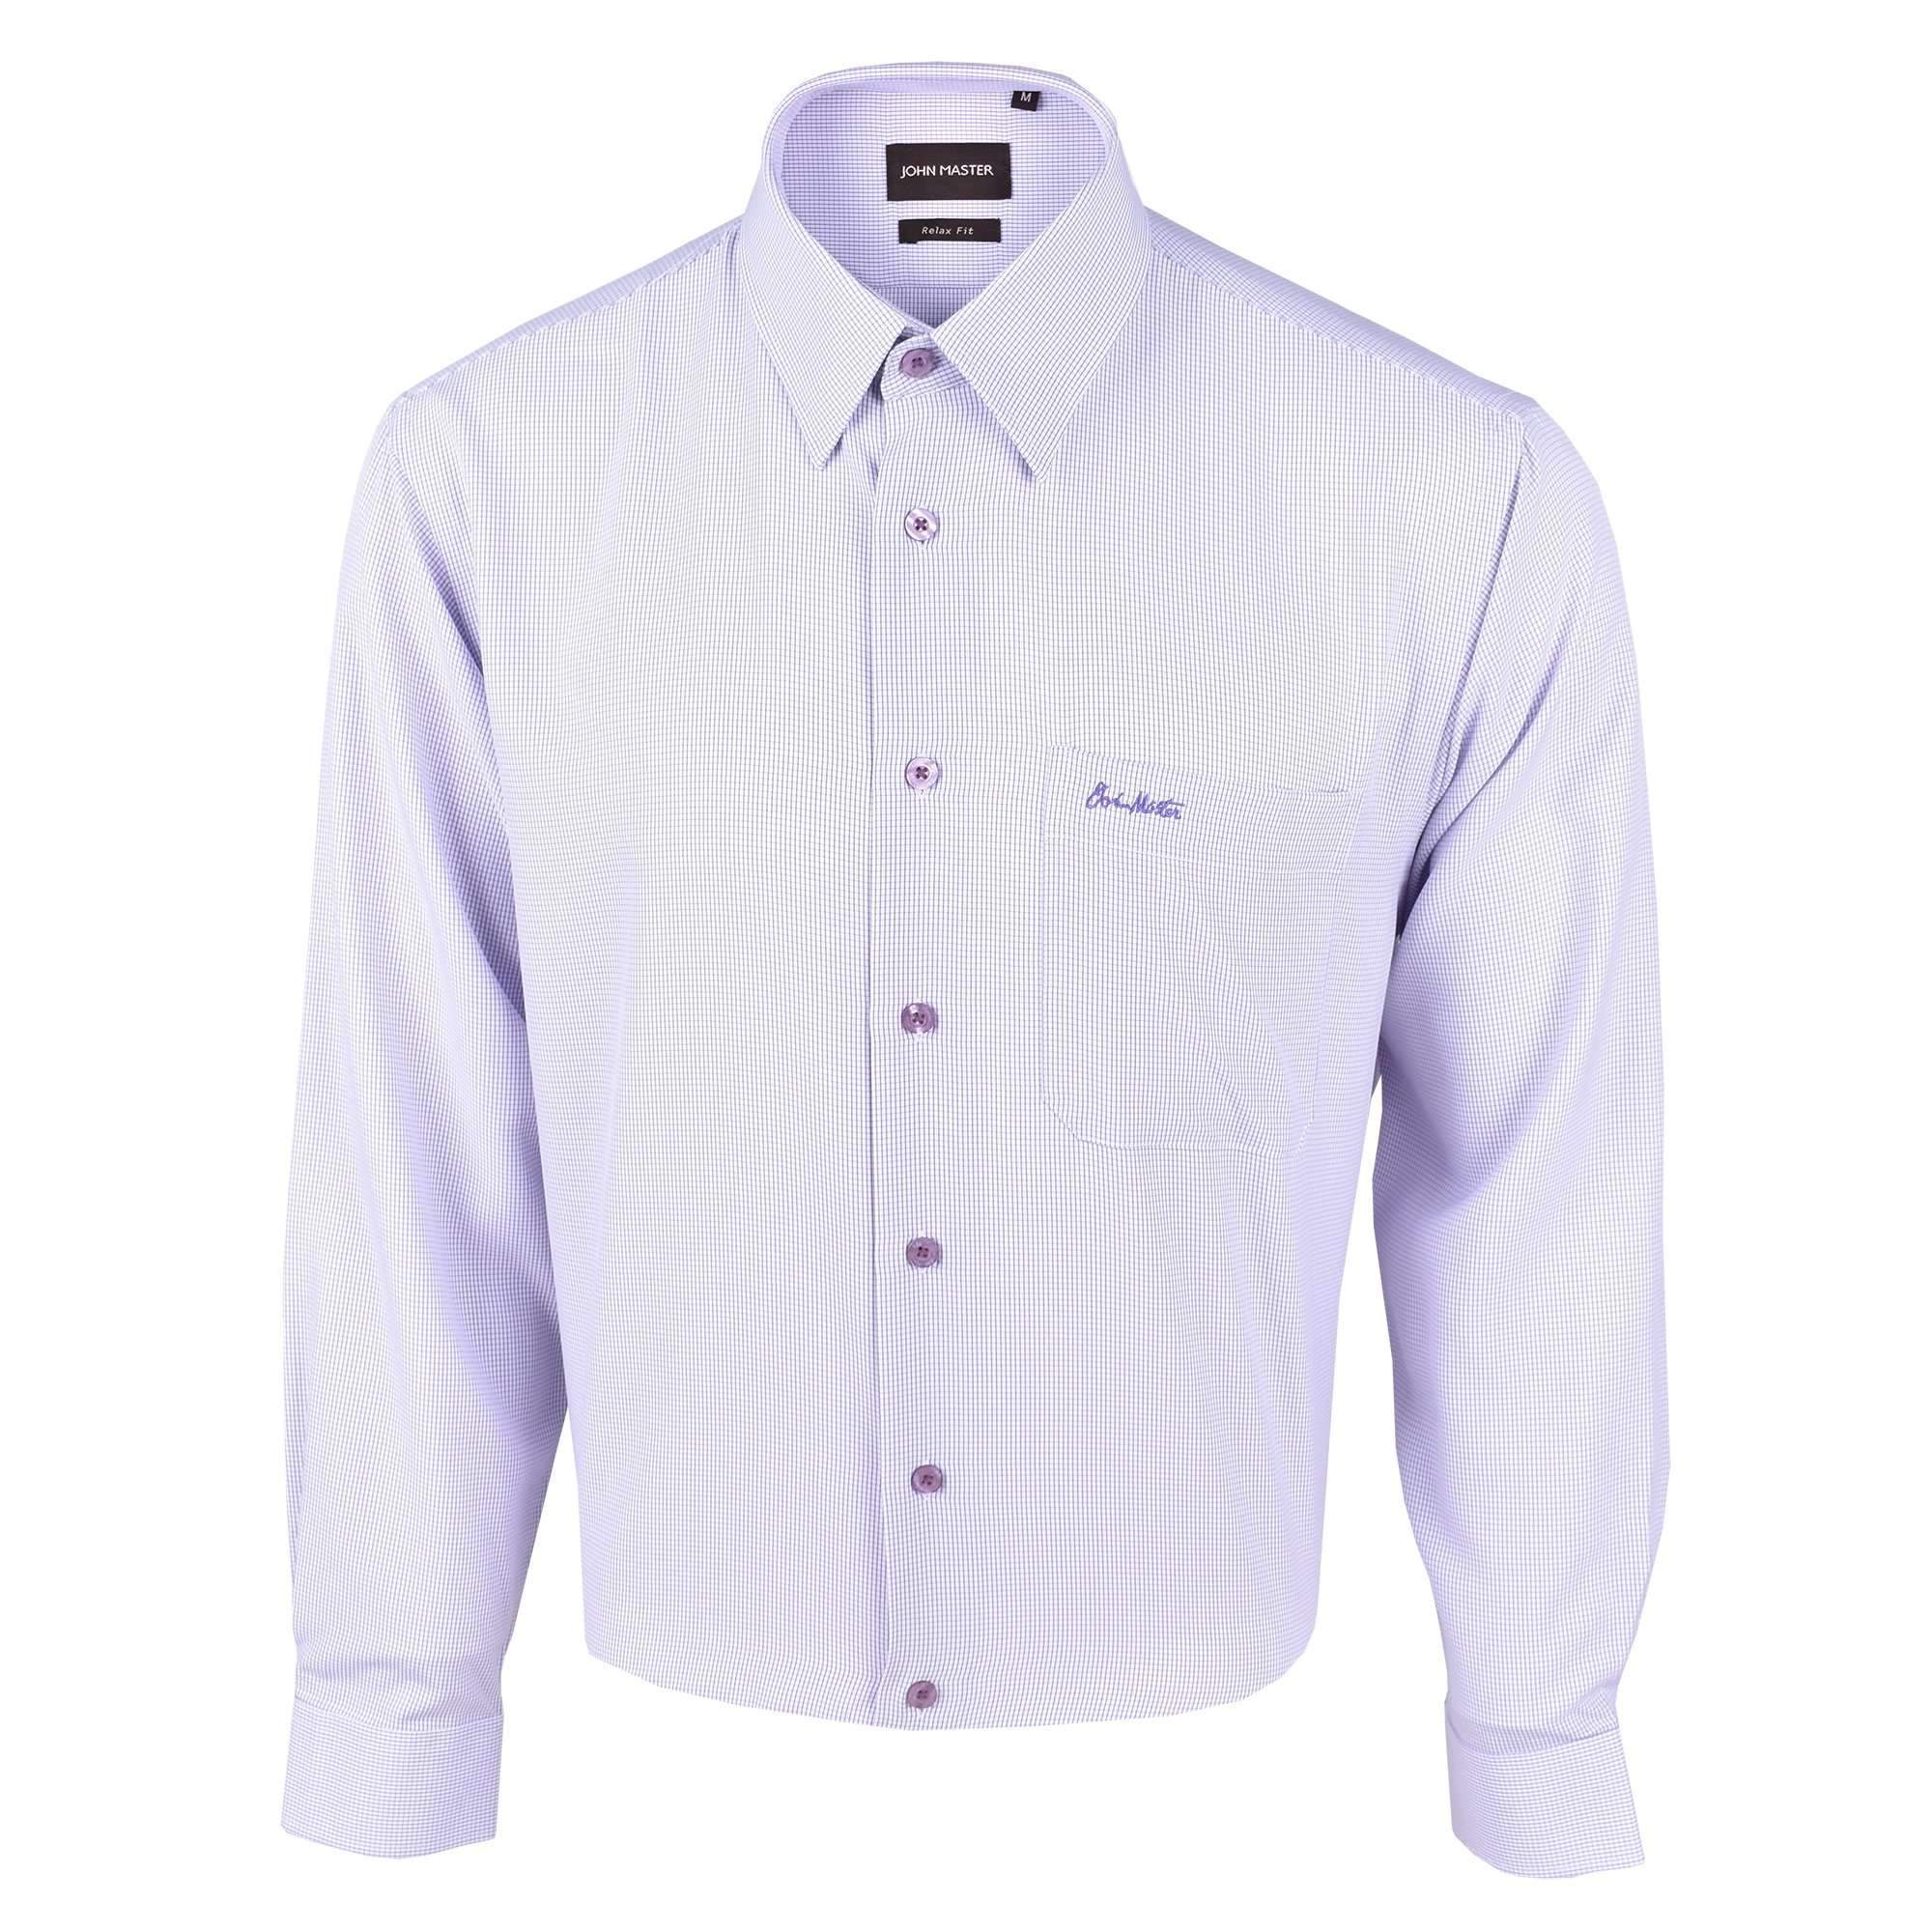 John Master Business Relax Fit Long Sleeves Shirt - Purple 7007008 : Buy John Master online at CMG.MY